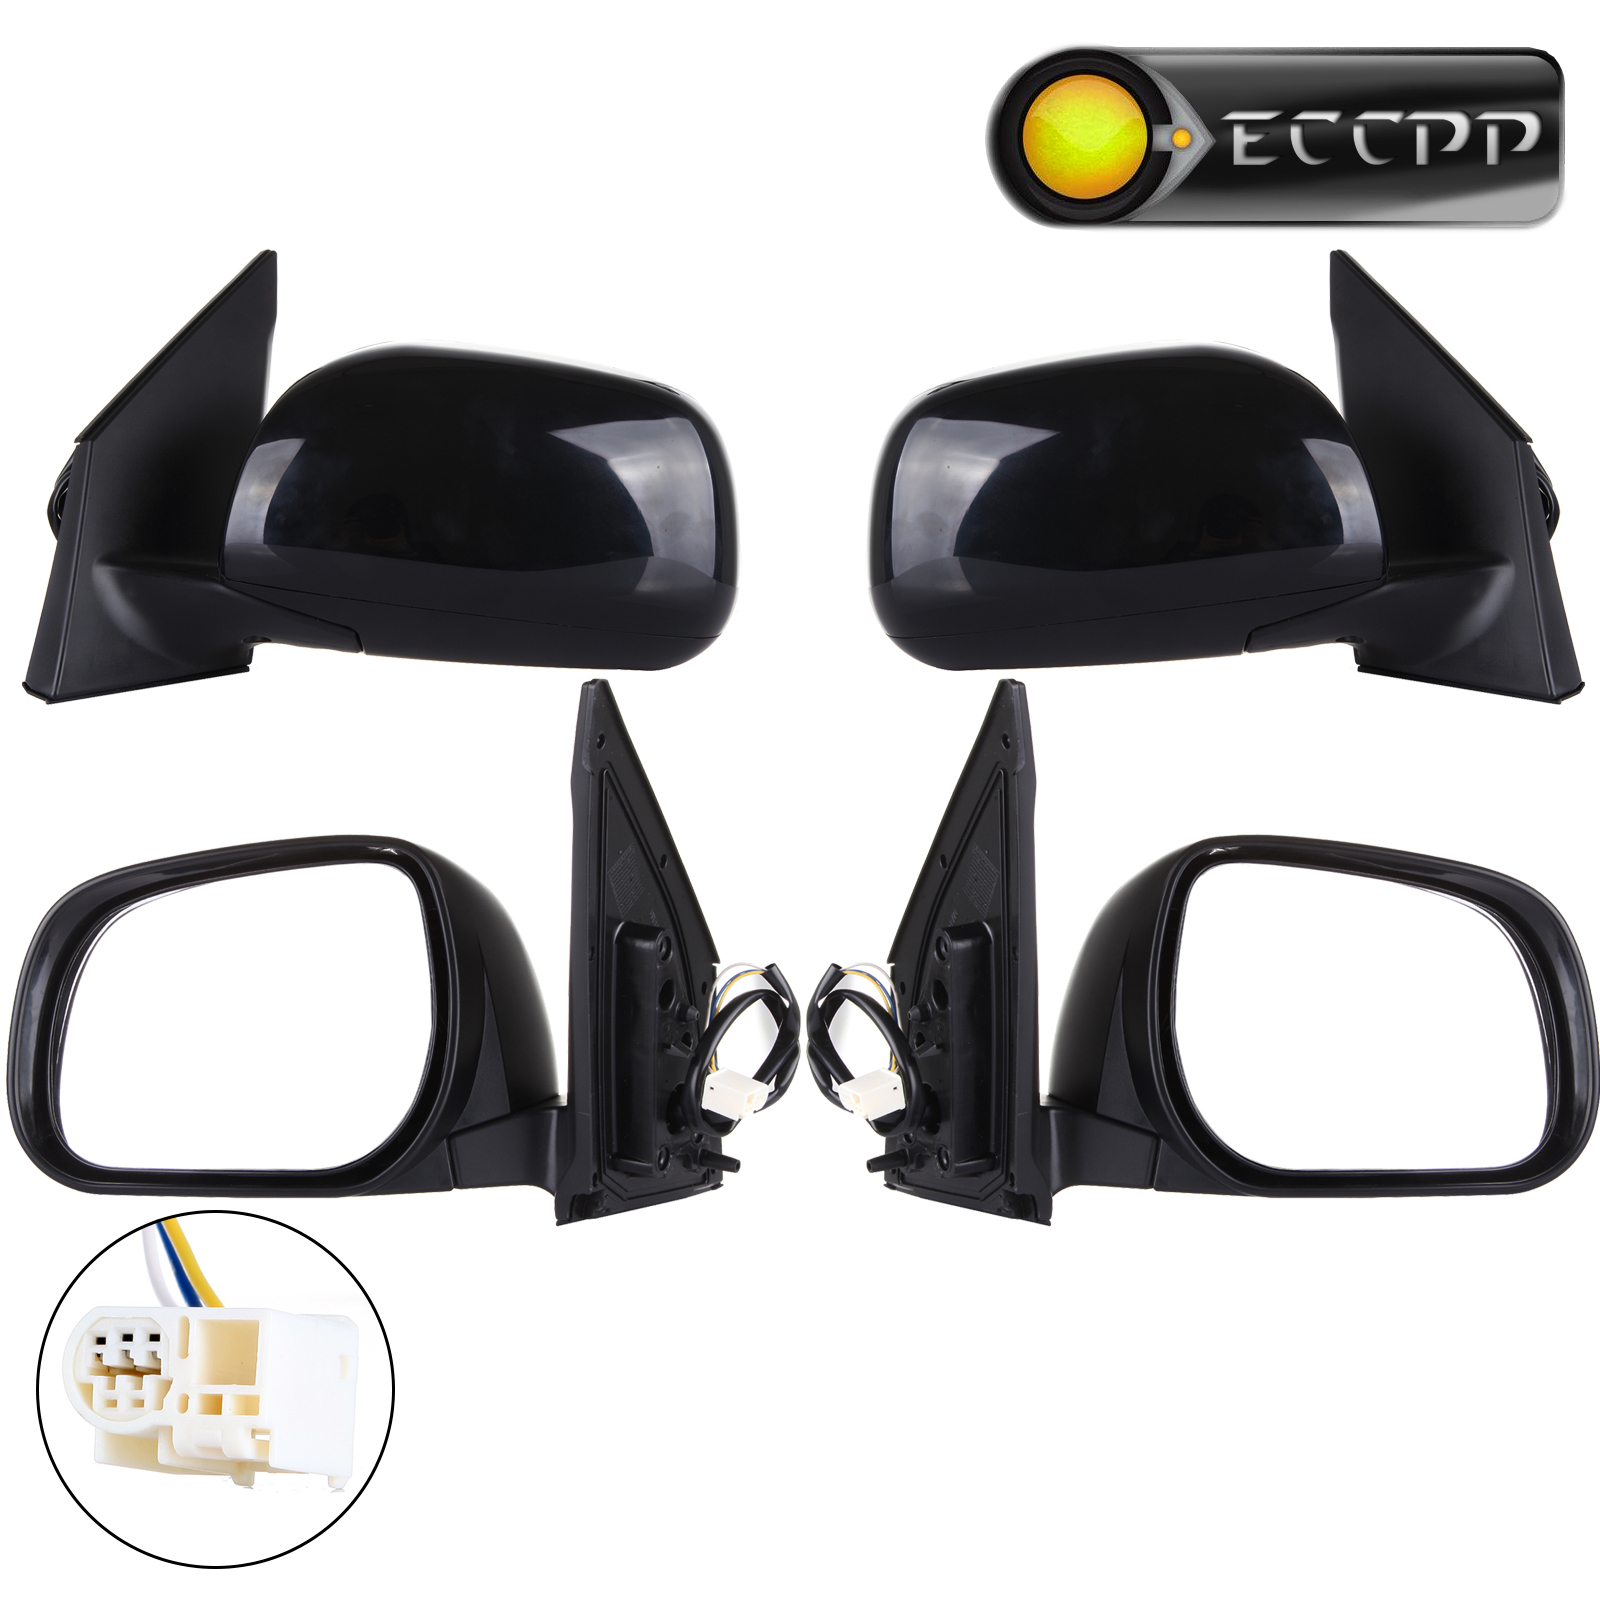 Eccpp power driver and passenger side view mirrors left right rear view mirror pair set for 2006 2008 toyota rav4 rav 4